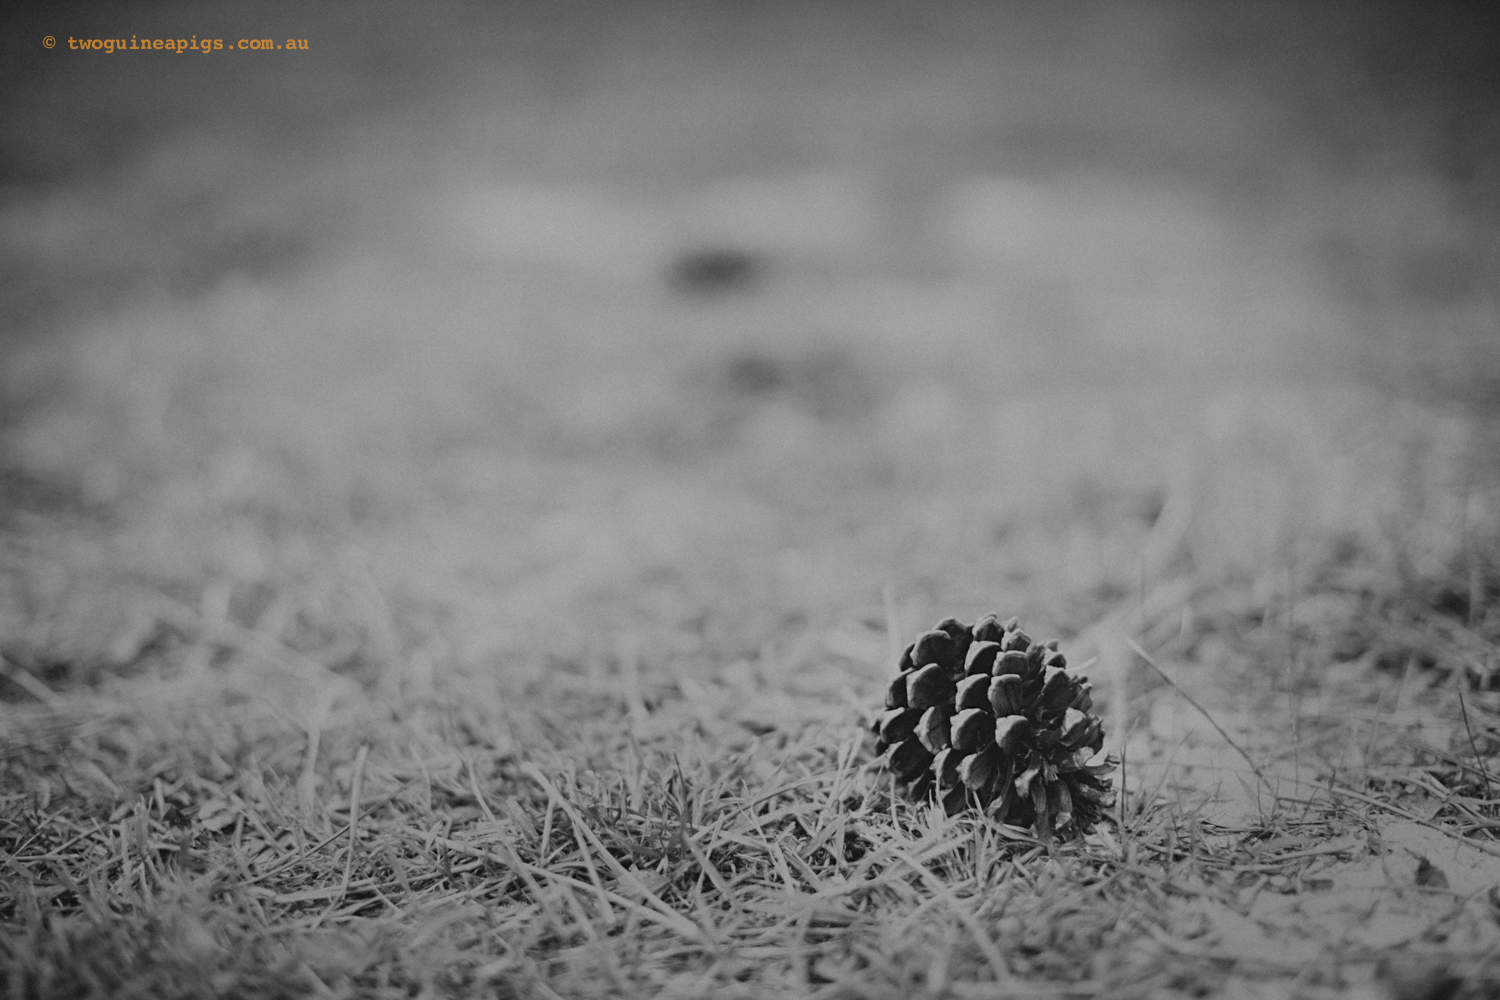 twoguineapigs_pine-cone_abstract2_1500.jpg